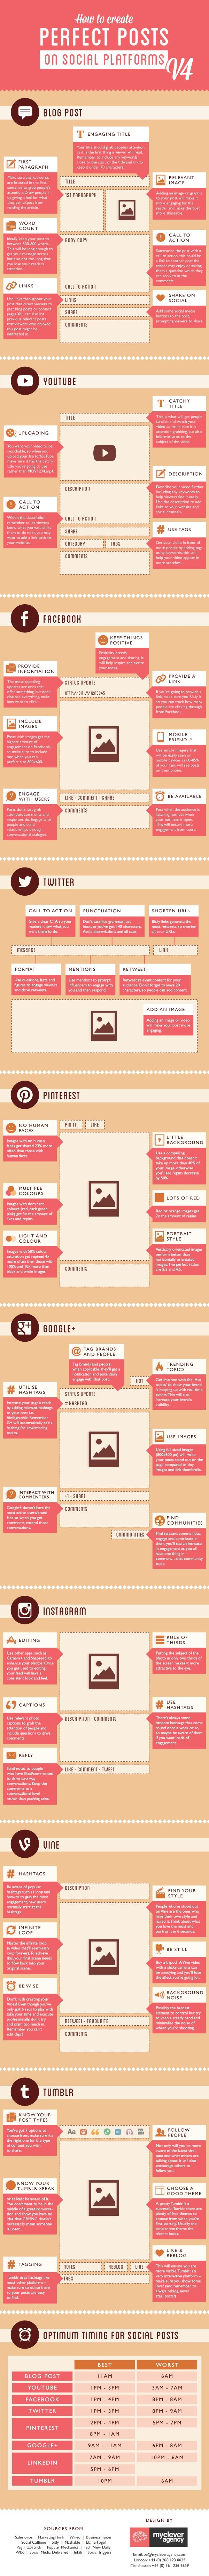 The Art of Creating Perfect Social Media Posts - infographic | #TheMarketingTechAlert